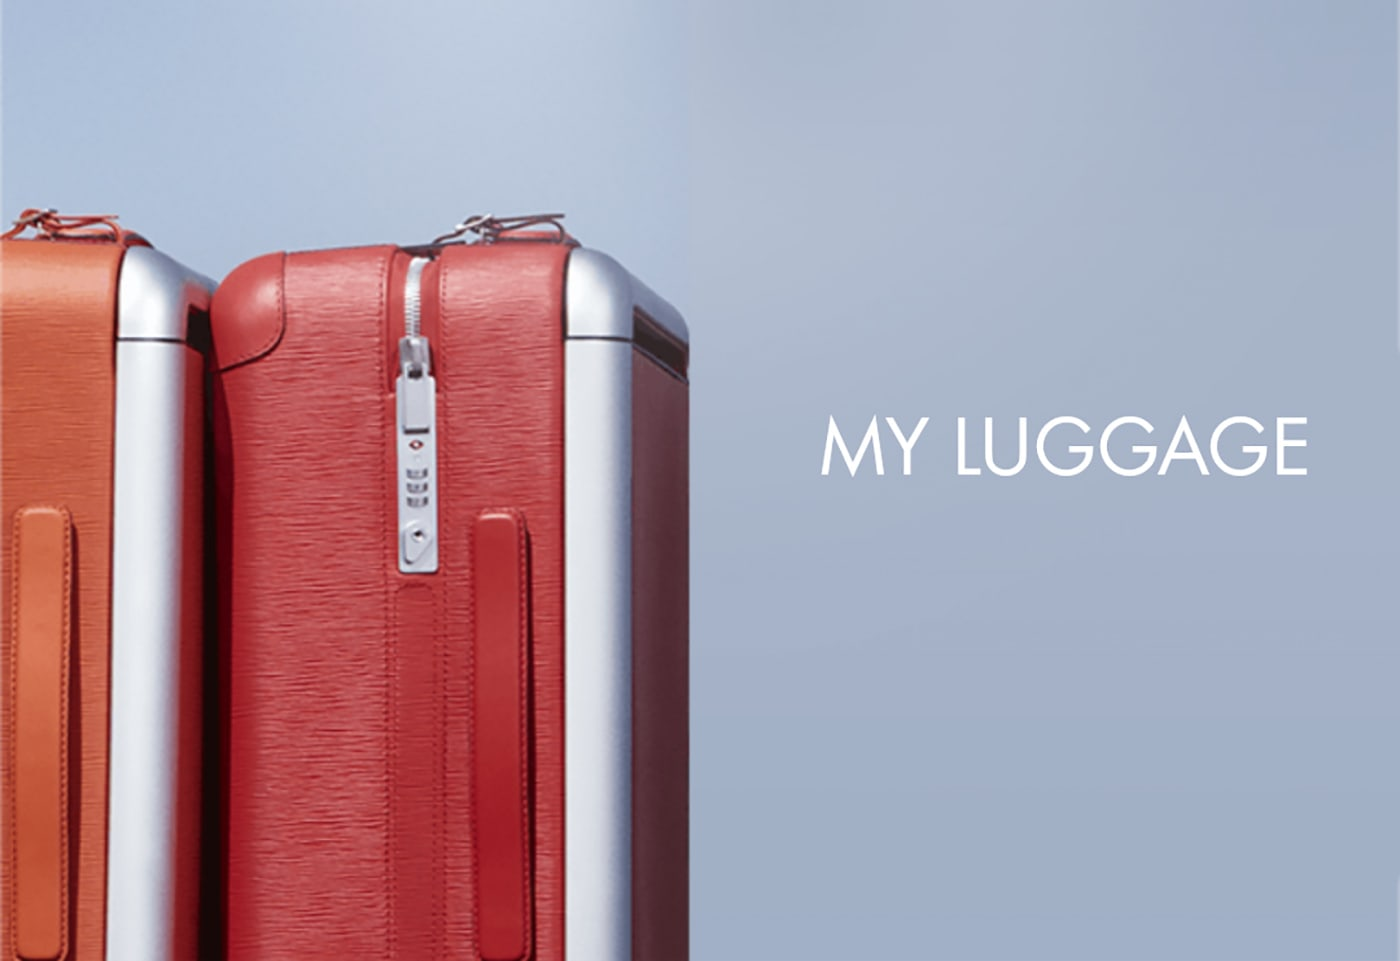 536c1c869659 Louis Vuitton is making a luggage tracker